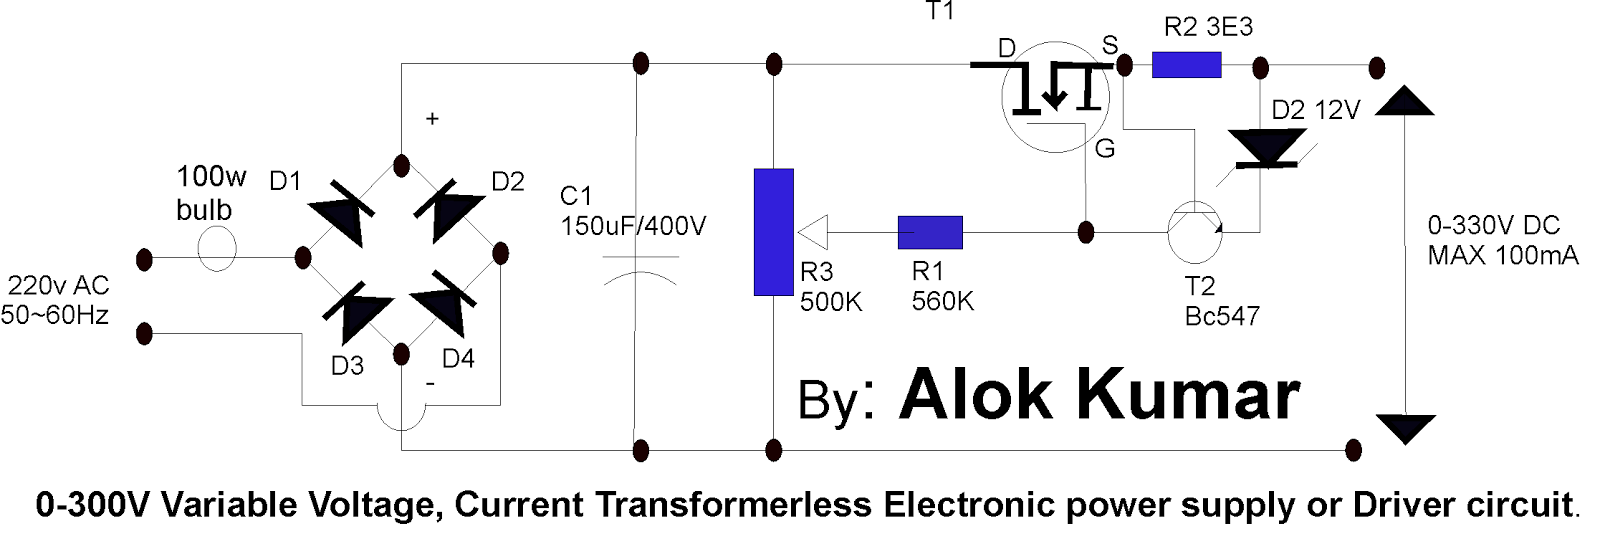 electronic circuits transformerless power supply led drivers rh electronicpowersupply blogspot com